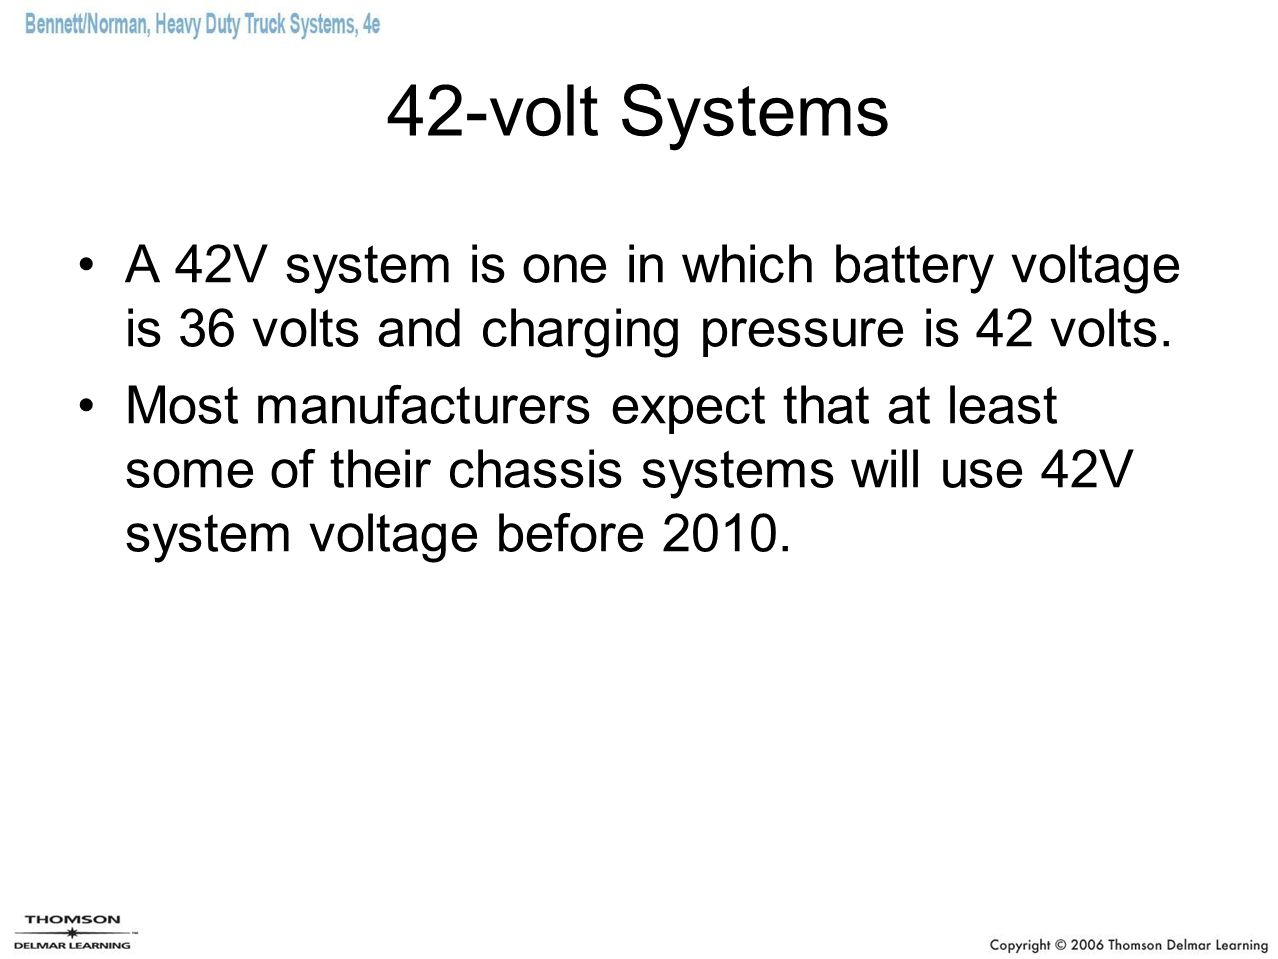 42-volt Systems A 42V system is one in which battery voltage is 36 volts and charging pressure is 42 volts.